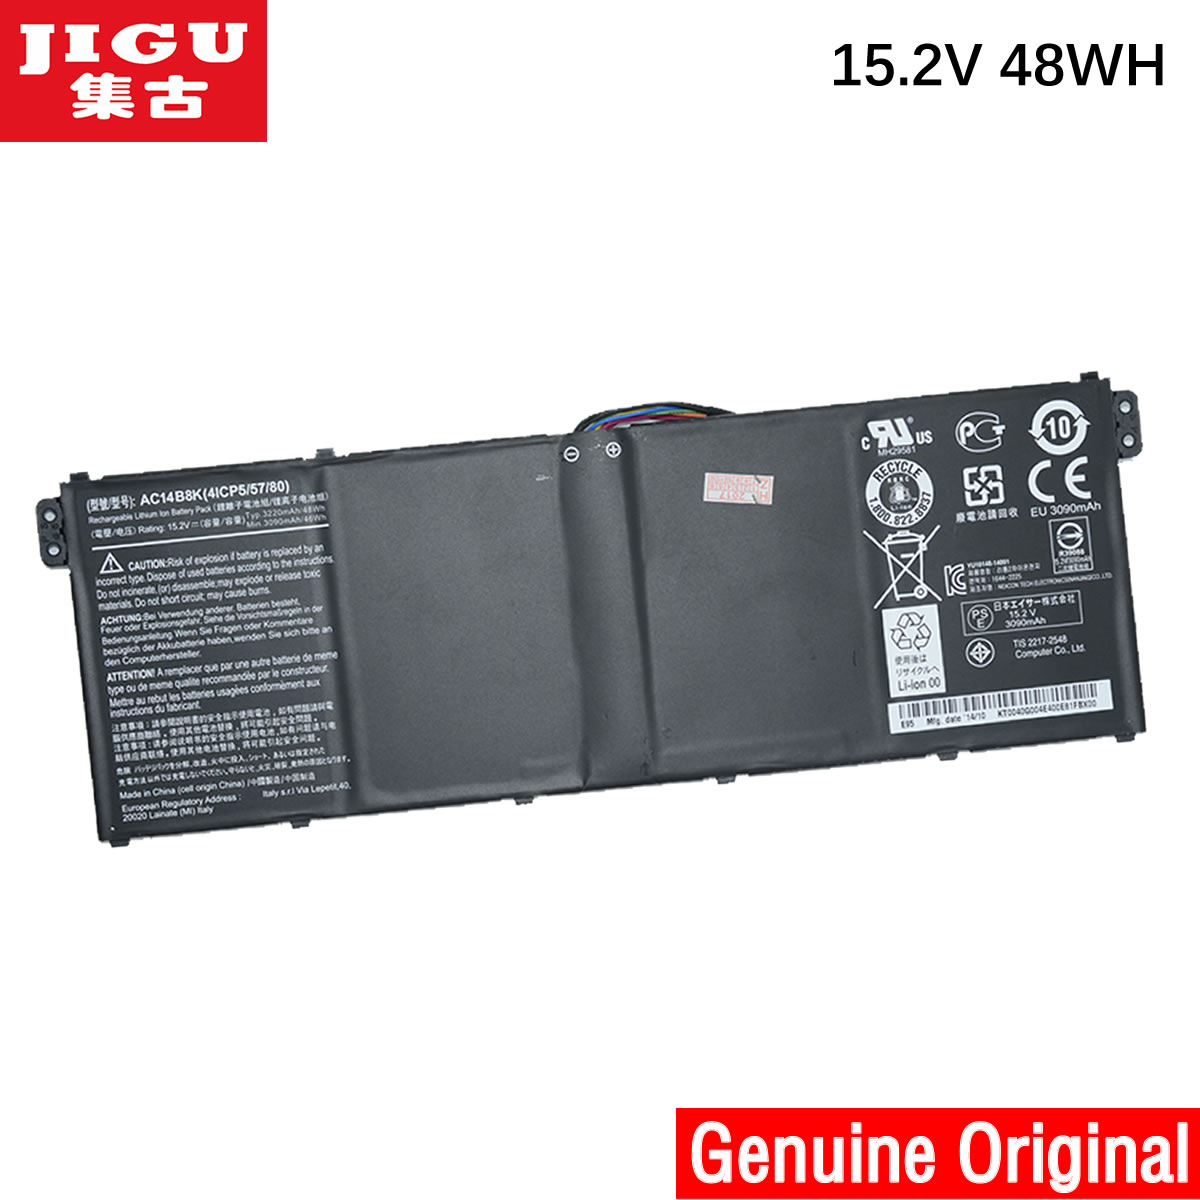 JIGU Original Laptop Battery AC14B8K FOR Acer Aspire E3-111 E3-112 CB3-111 CB5-311 ES1-511 ES1-512 E5-771G V3-111 V3-371 ES1-711 waterproof led solar light energy saving solar lamp with pir motion sensor 8 16 20 leds solar garden lights for outdoor lighting